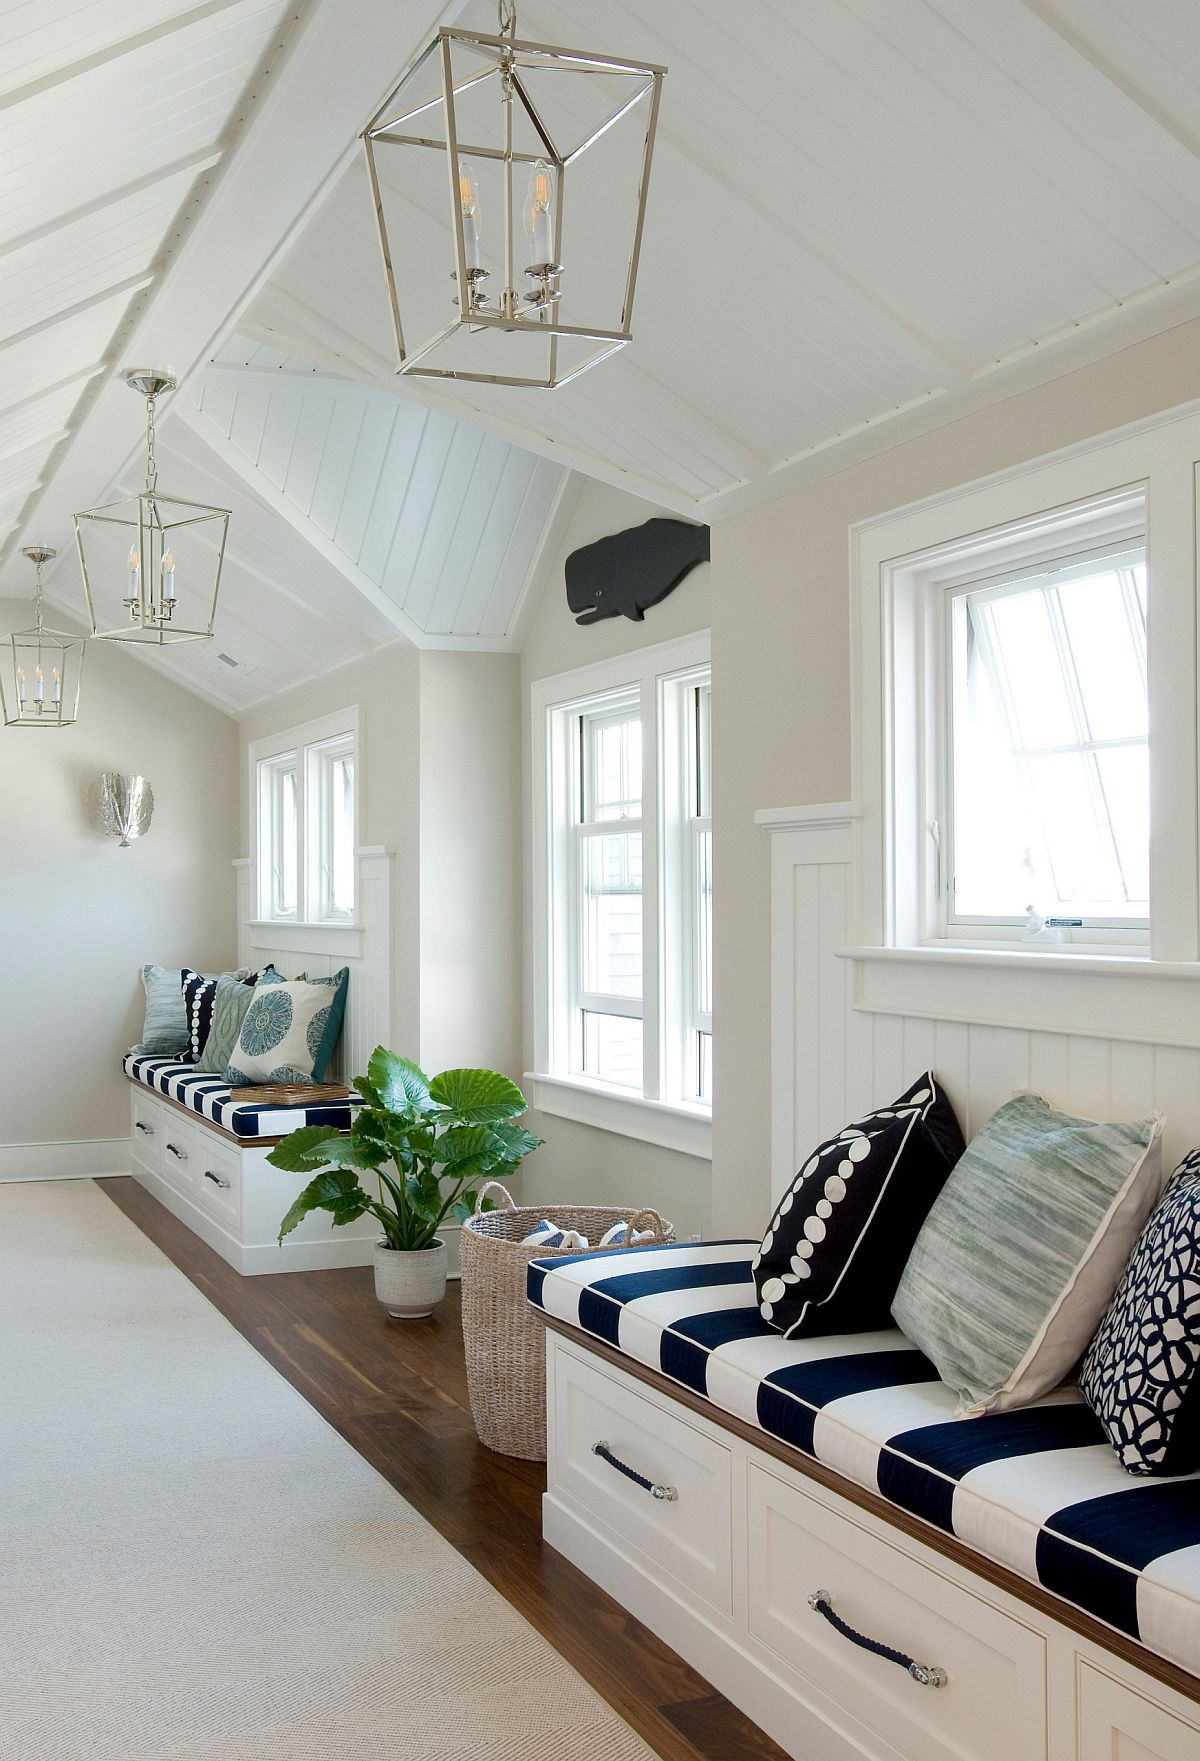 Spacious beach style hallway with custom built-in benches that offer plenty of storage space